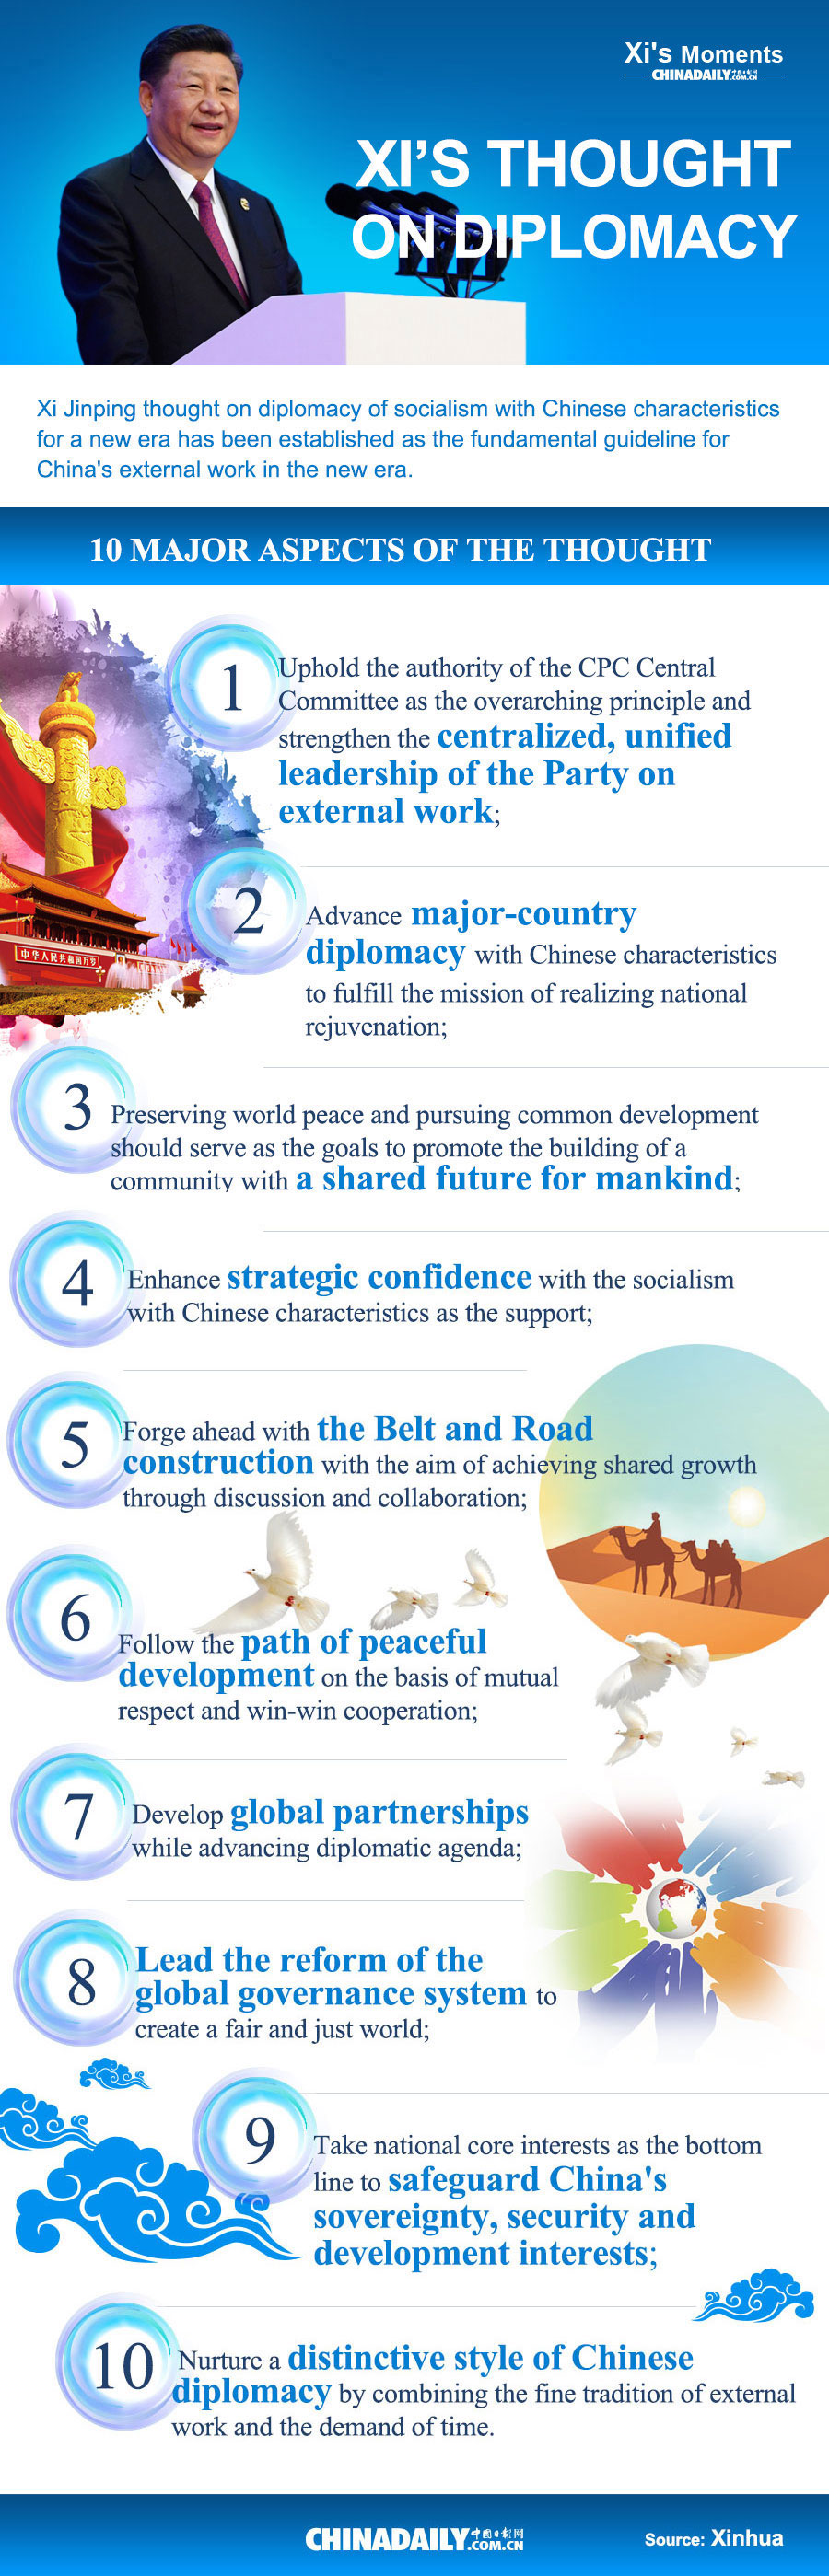 Major aspects of Xi's thought on diplomacy